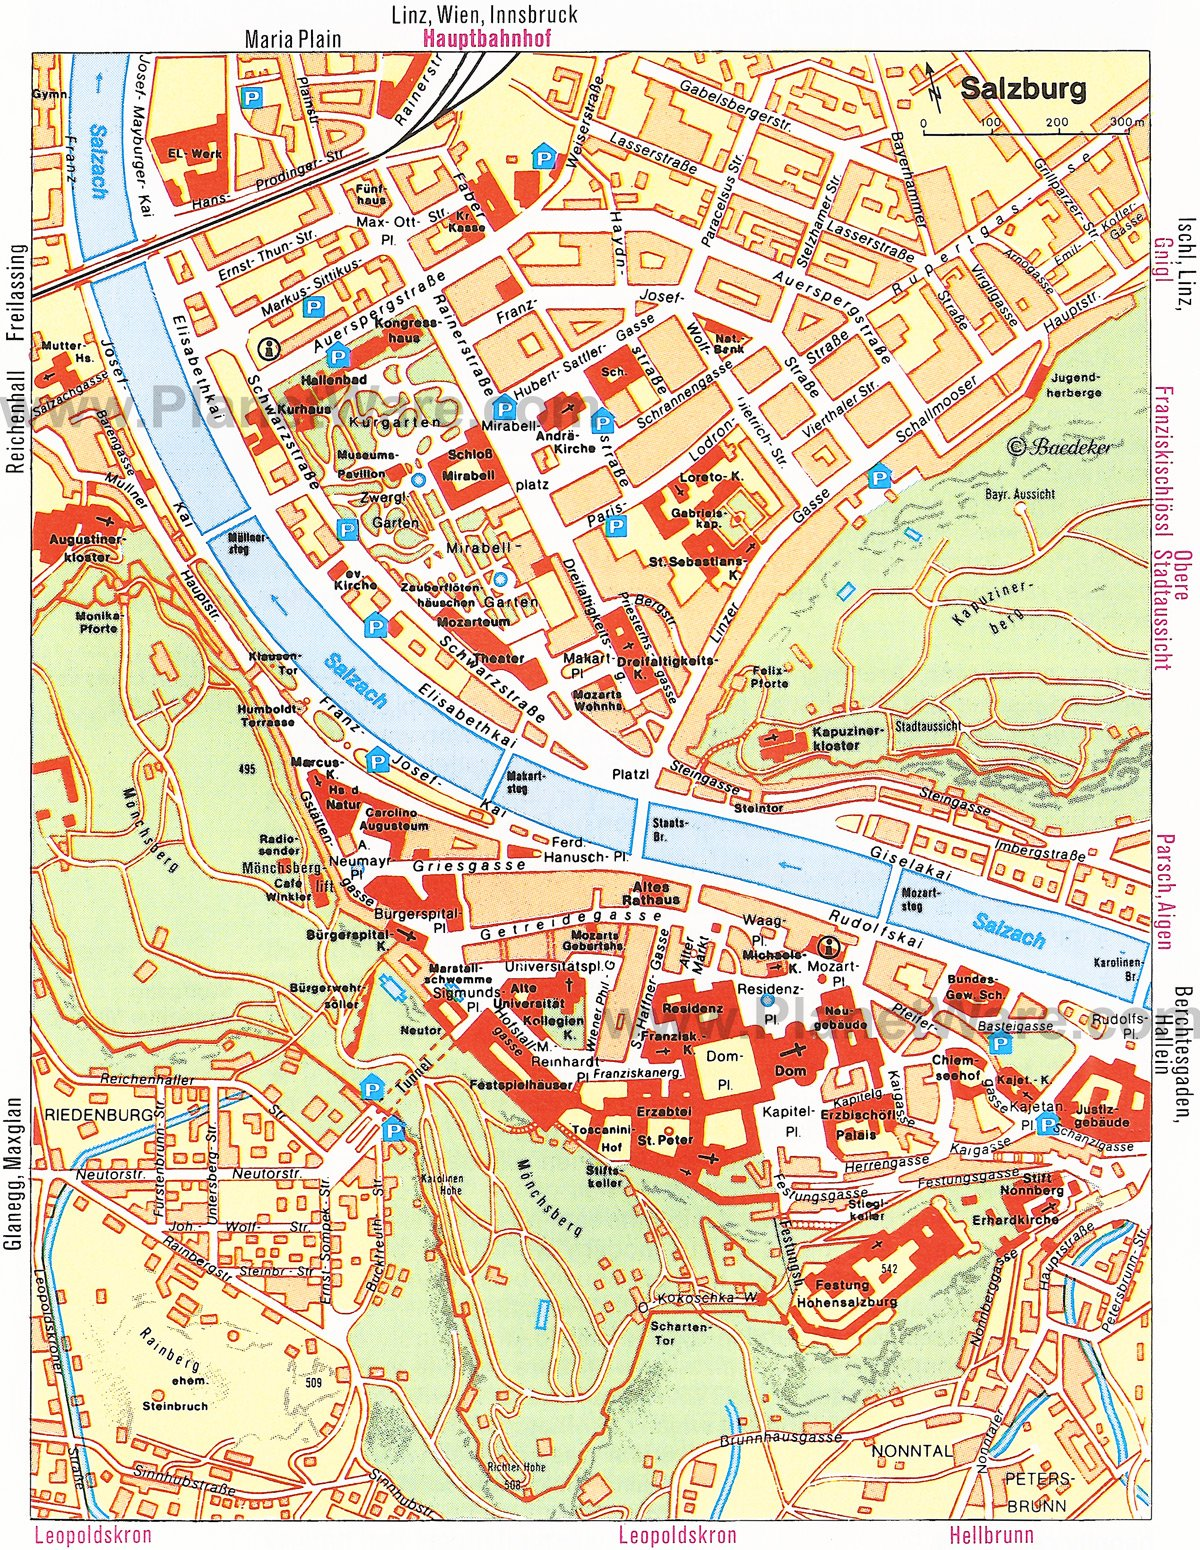 14 Top Tourist Attractions in Salzburg – Munich City Map Tourist